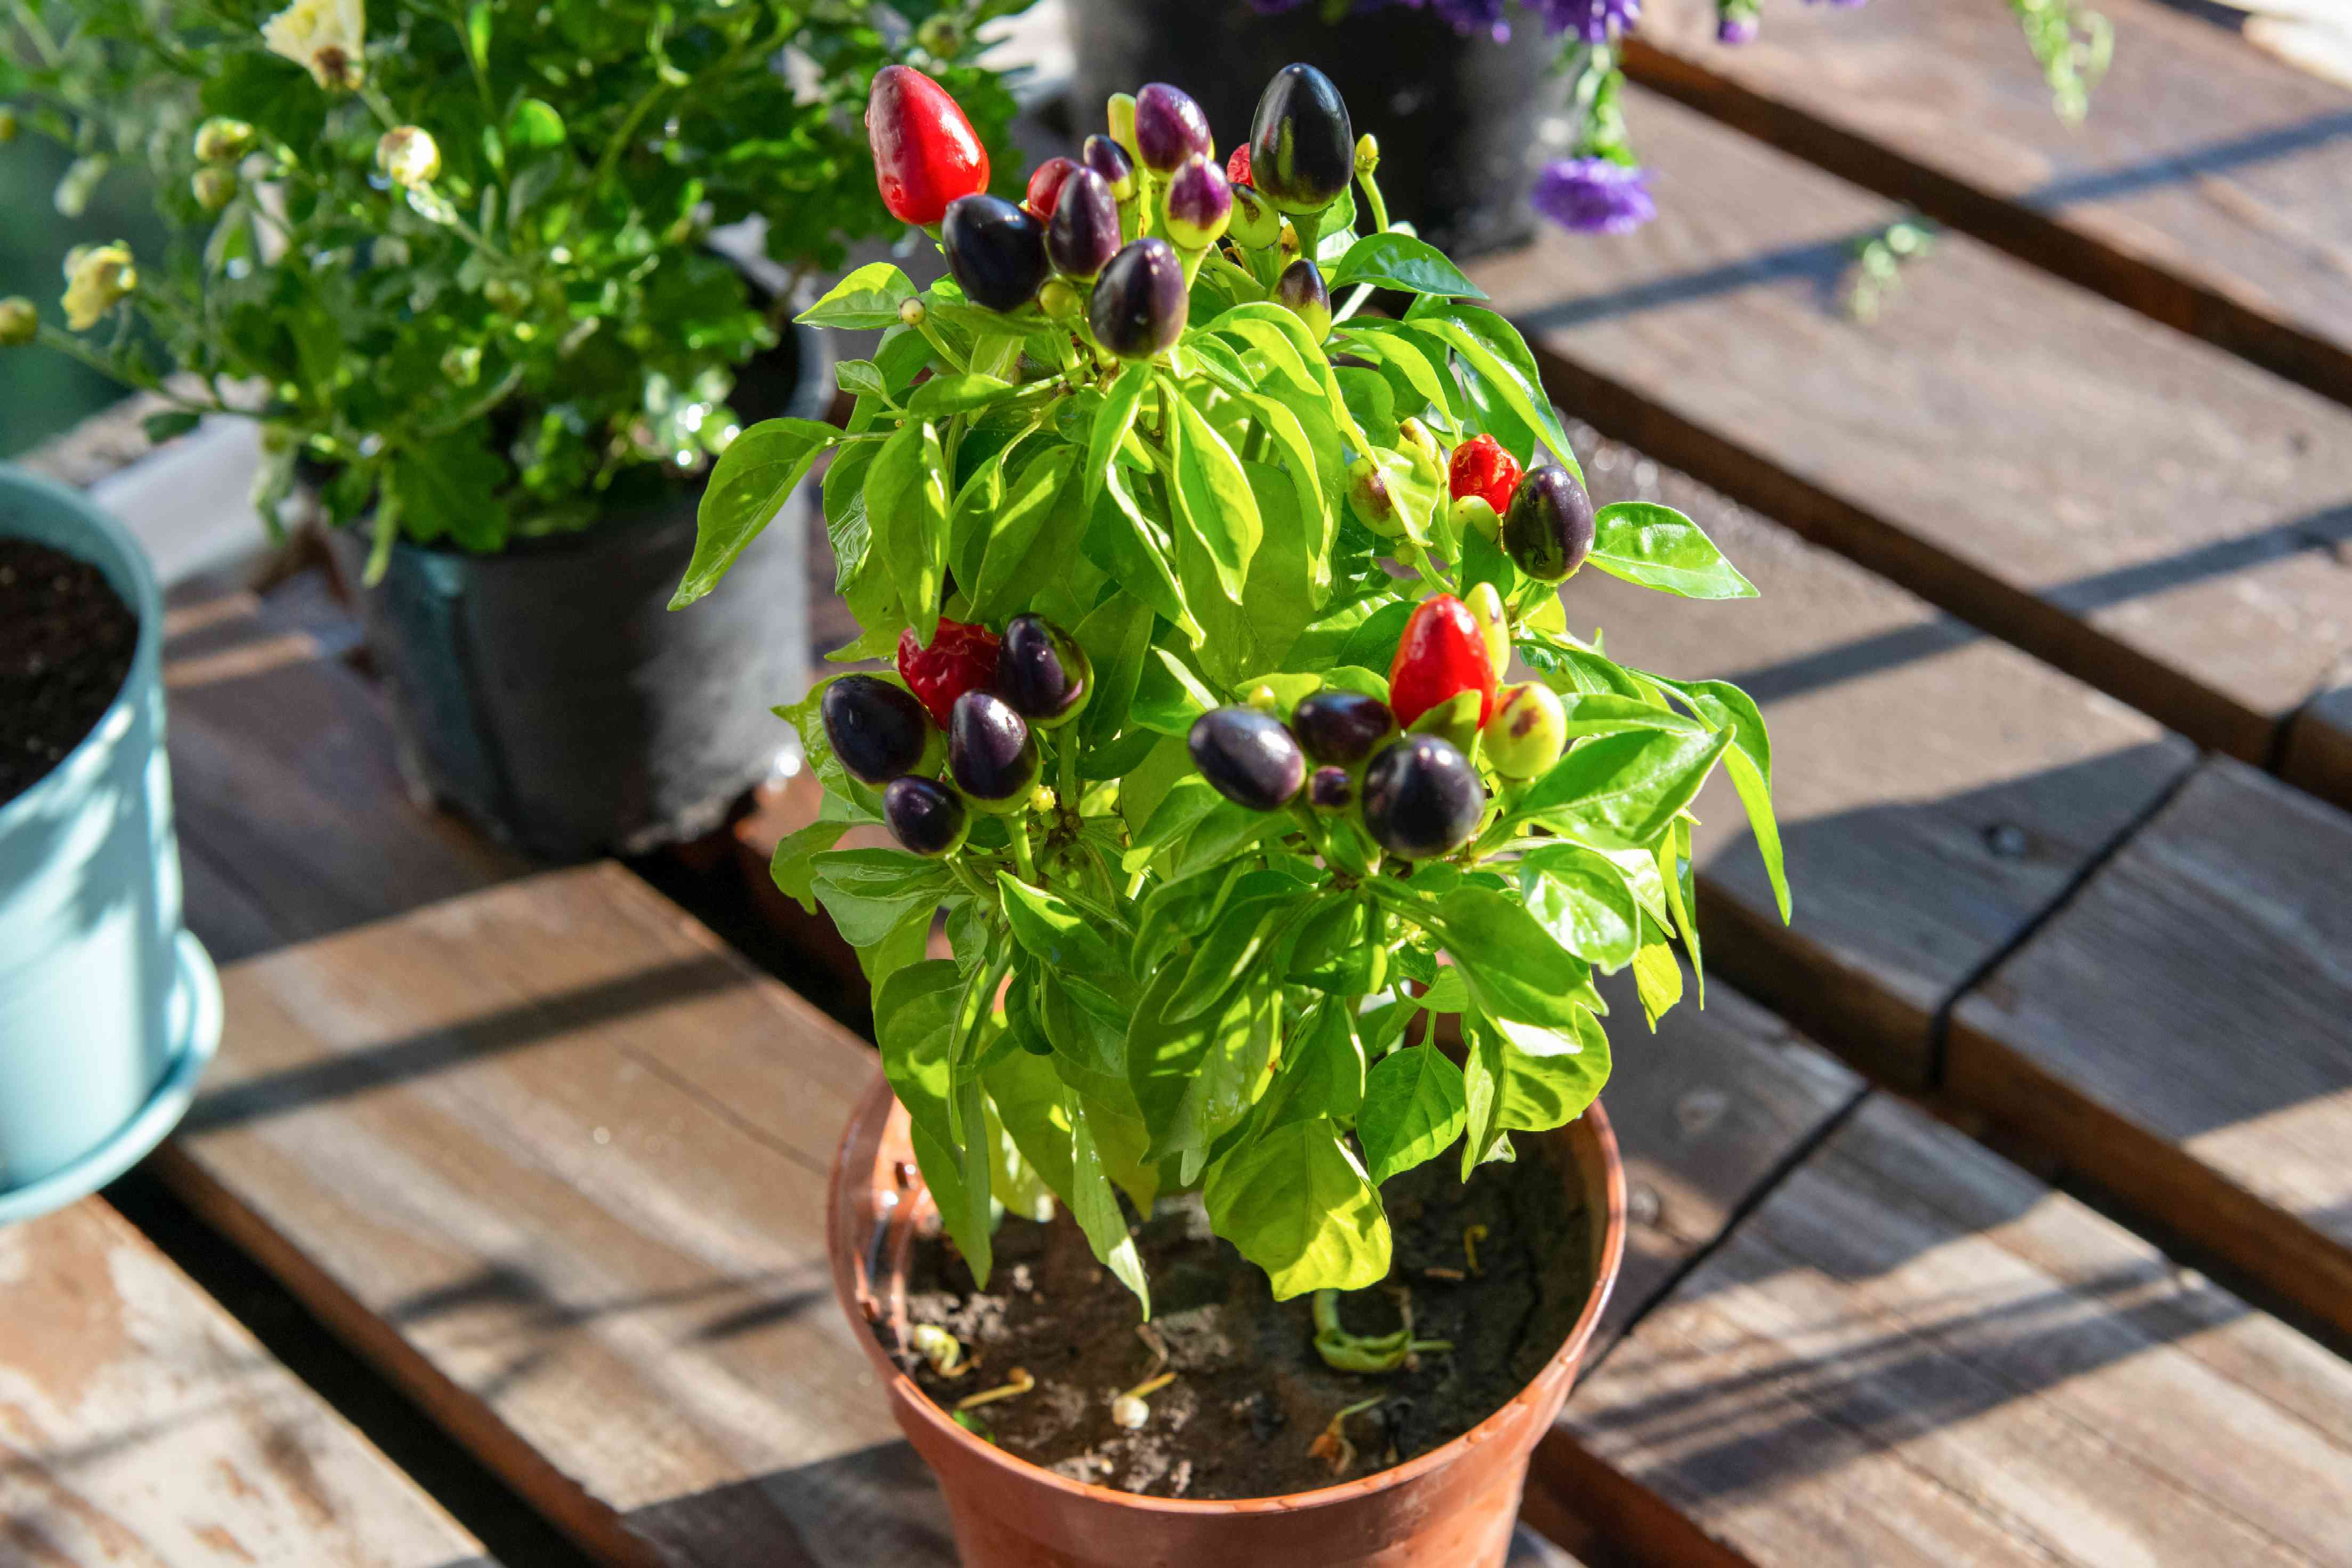 Small pot with black and red vegetables growing in sunny garden balcony